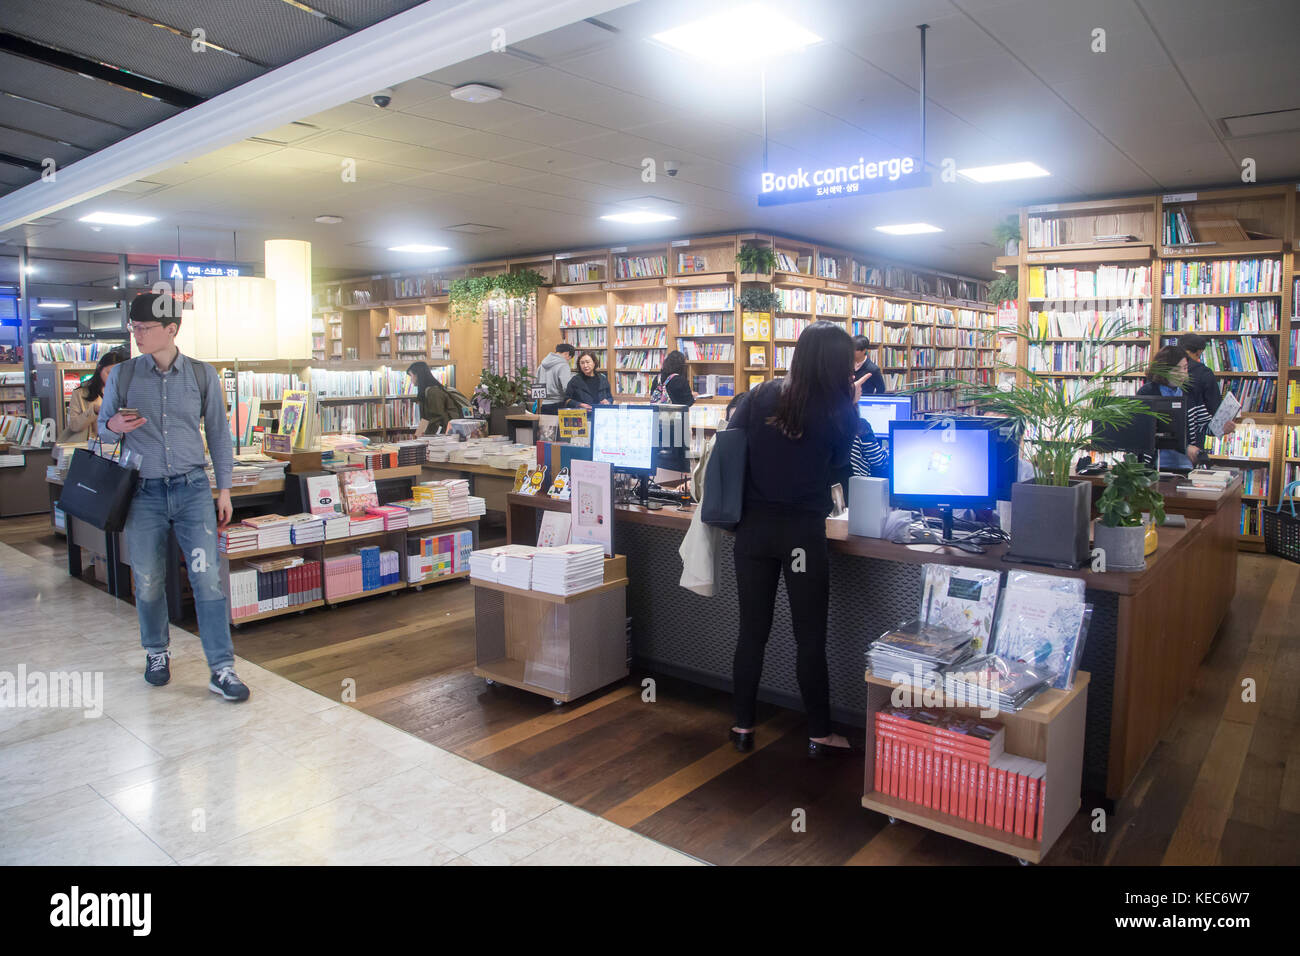 Kyobo Book Store, Oct 19, 2017 : Books are displayed at